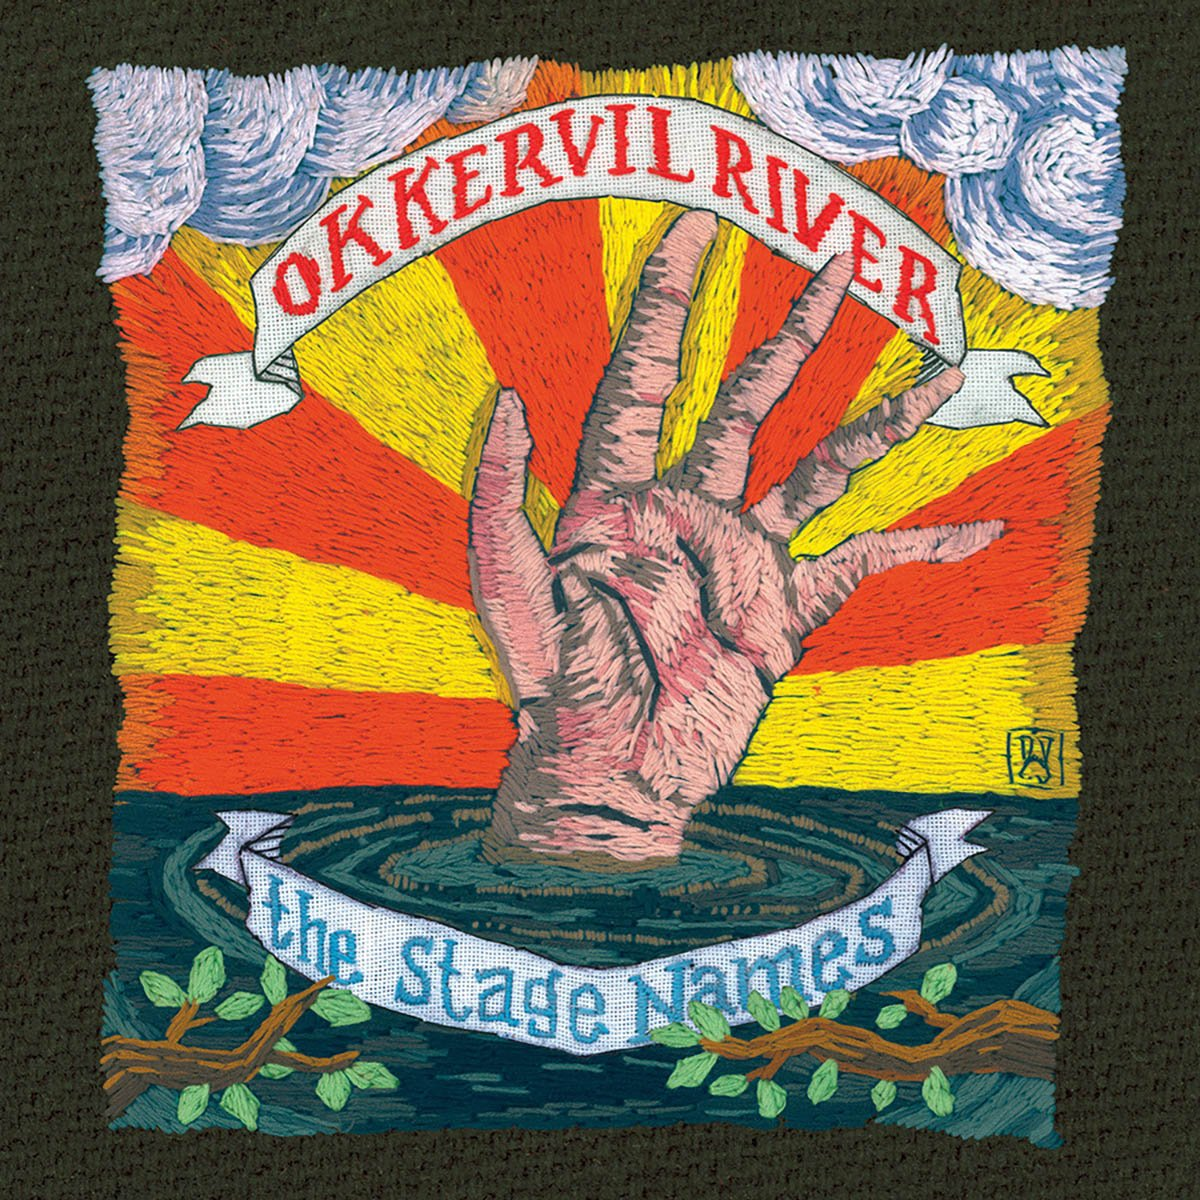 Okkervil River, The Stage Names